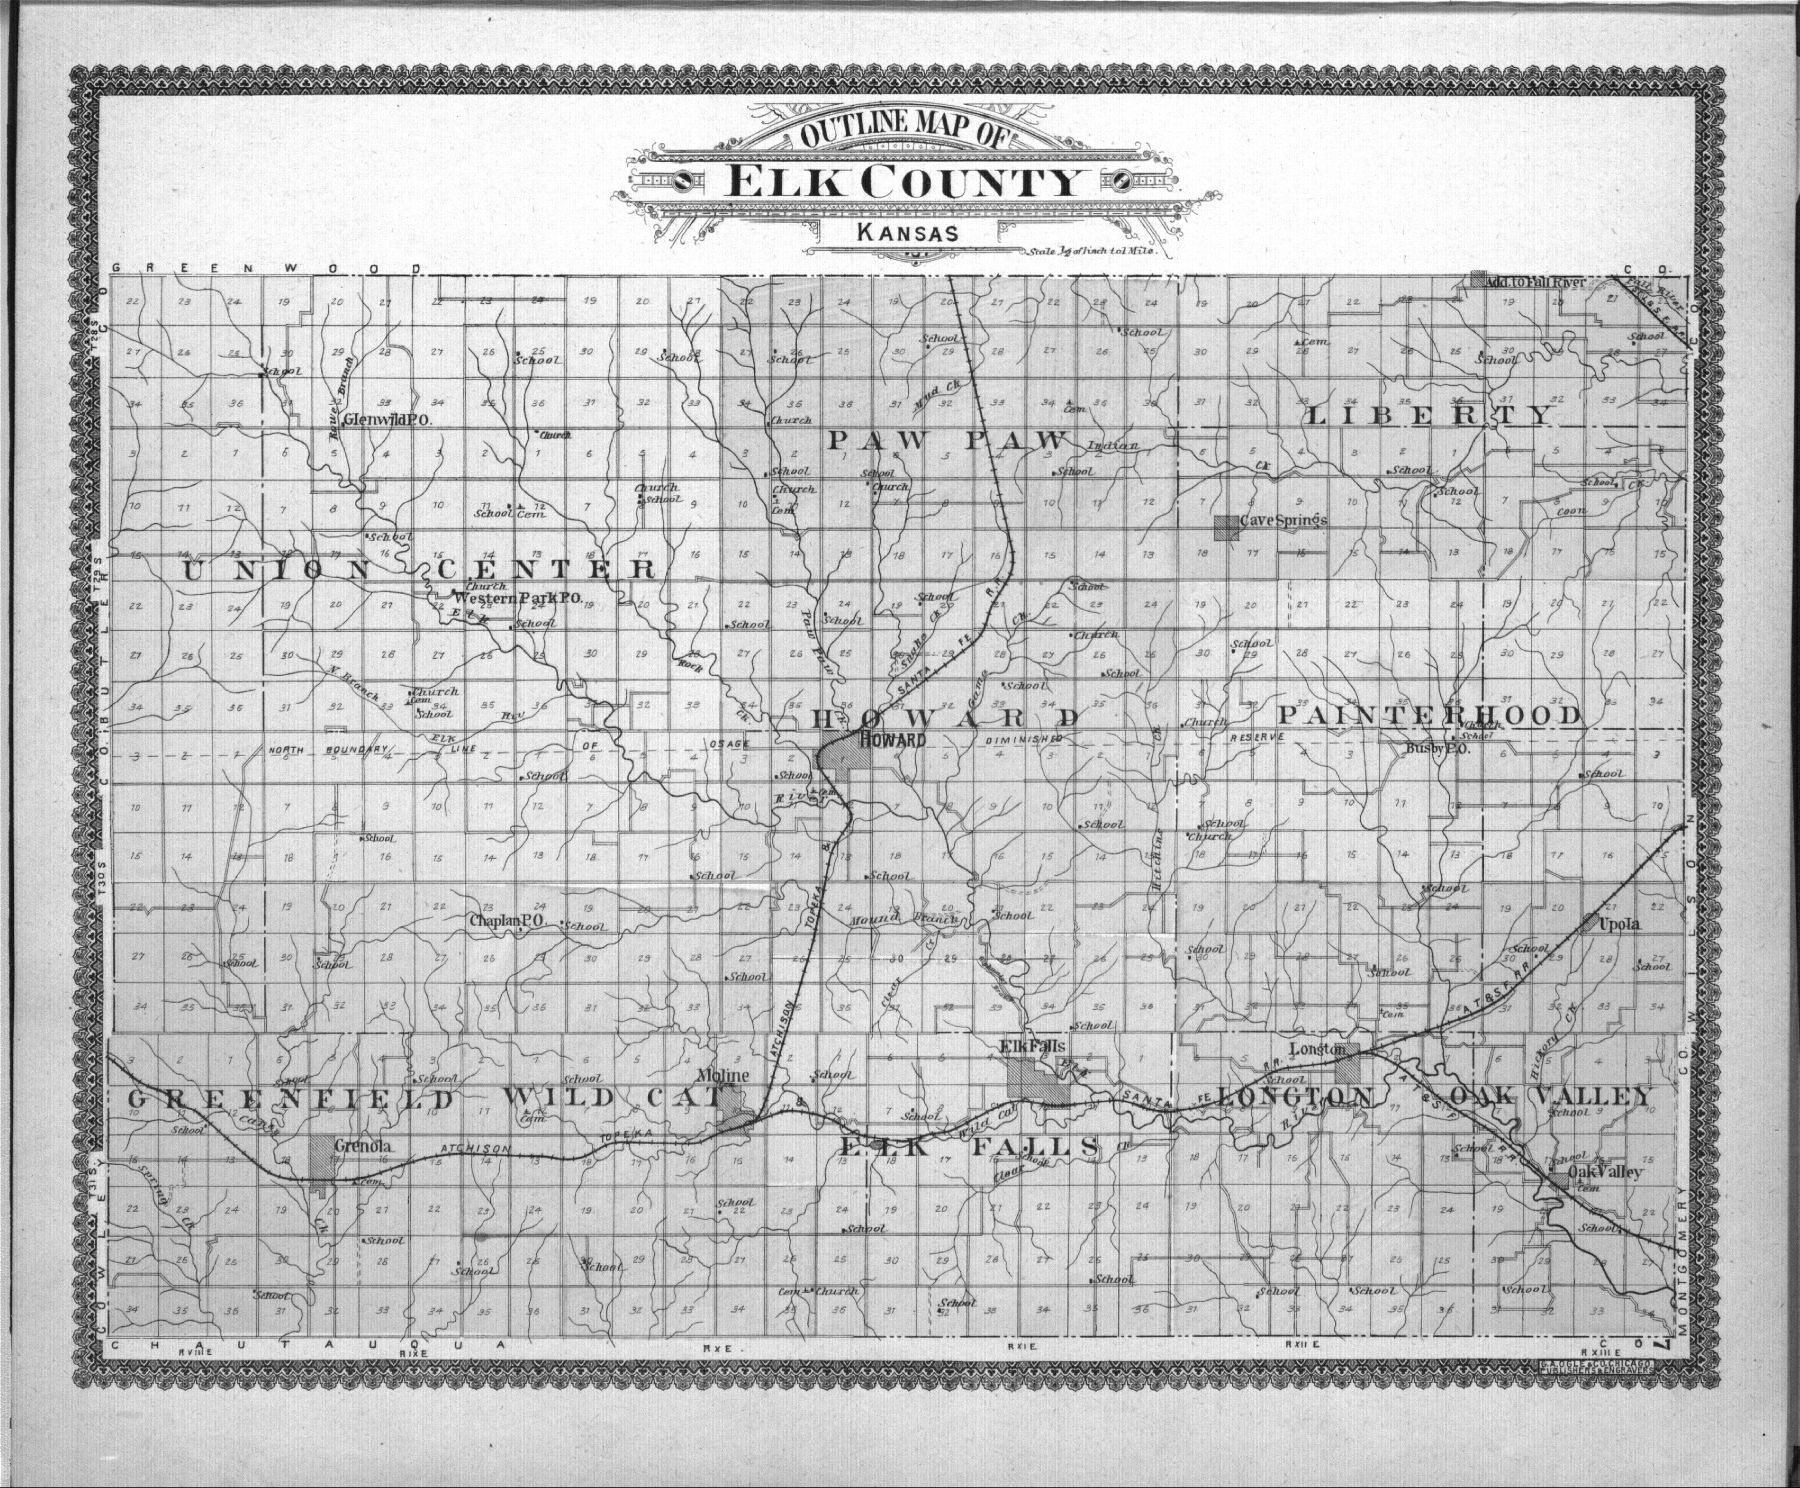 Standard atlas of Elk County, Kansas - 7